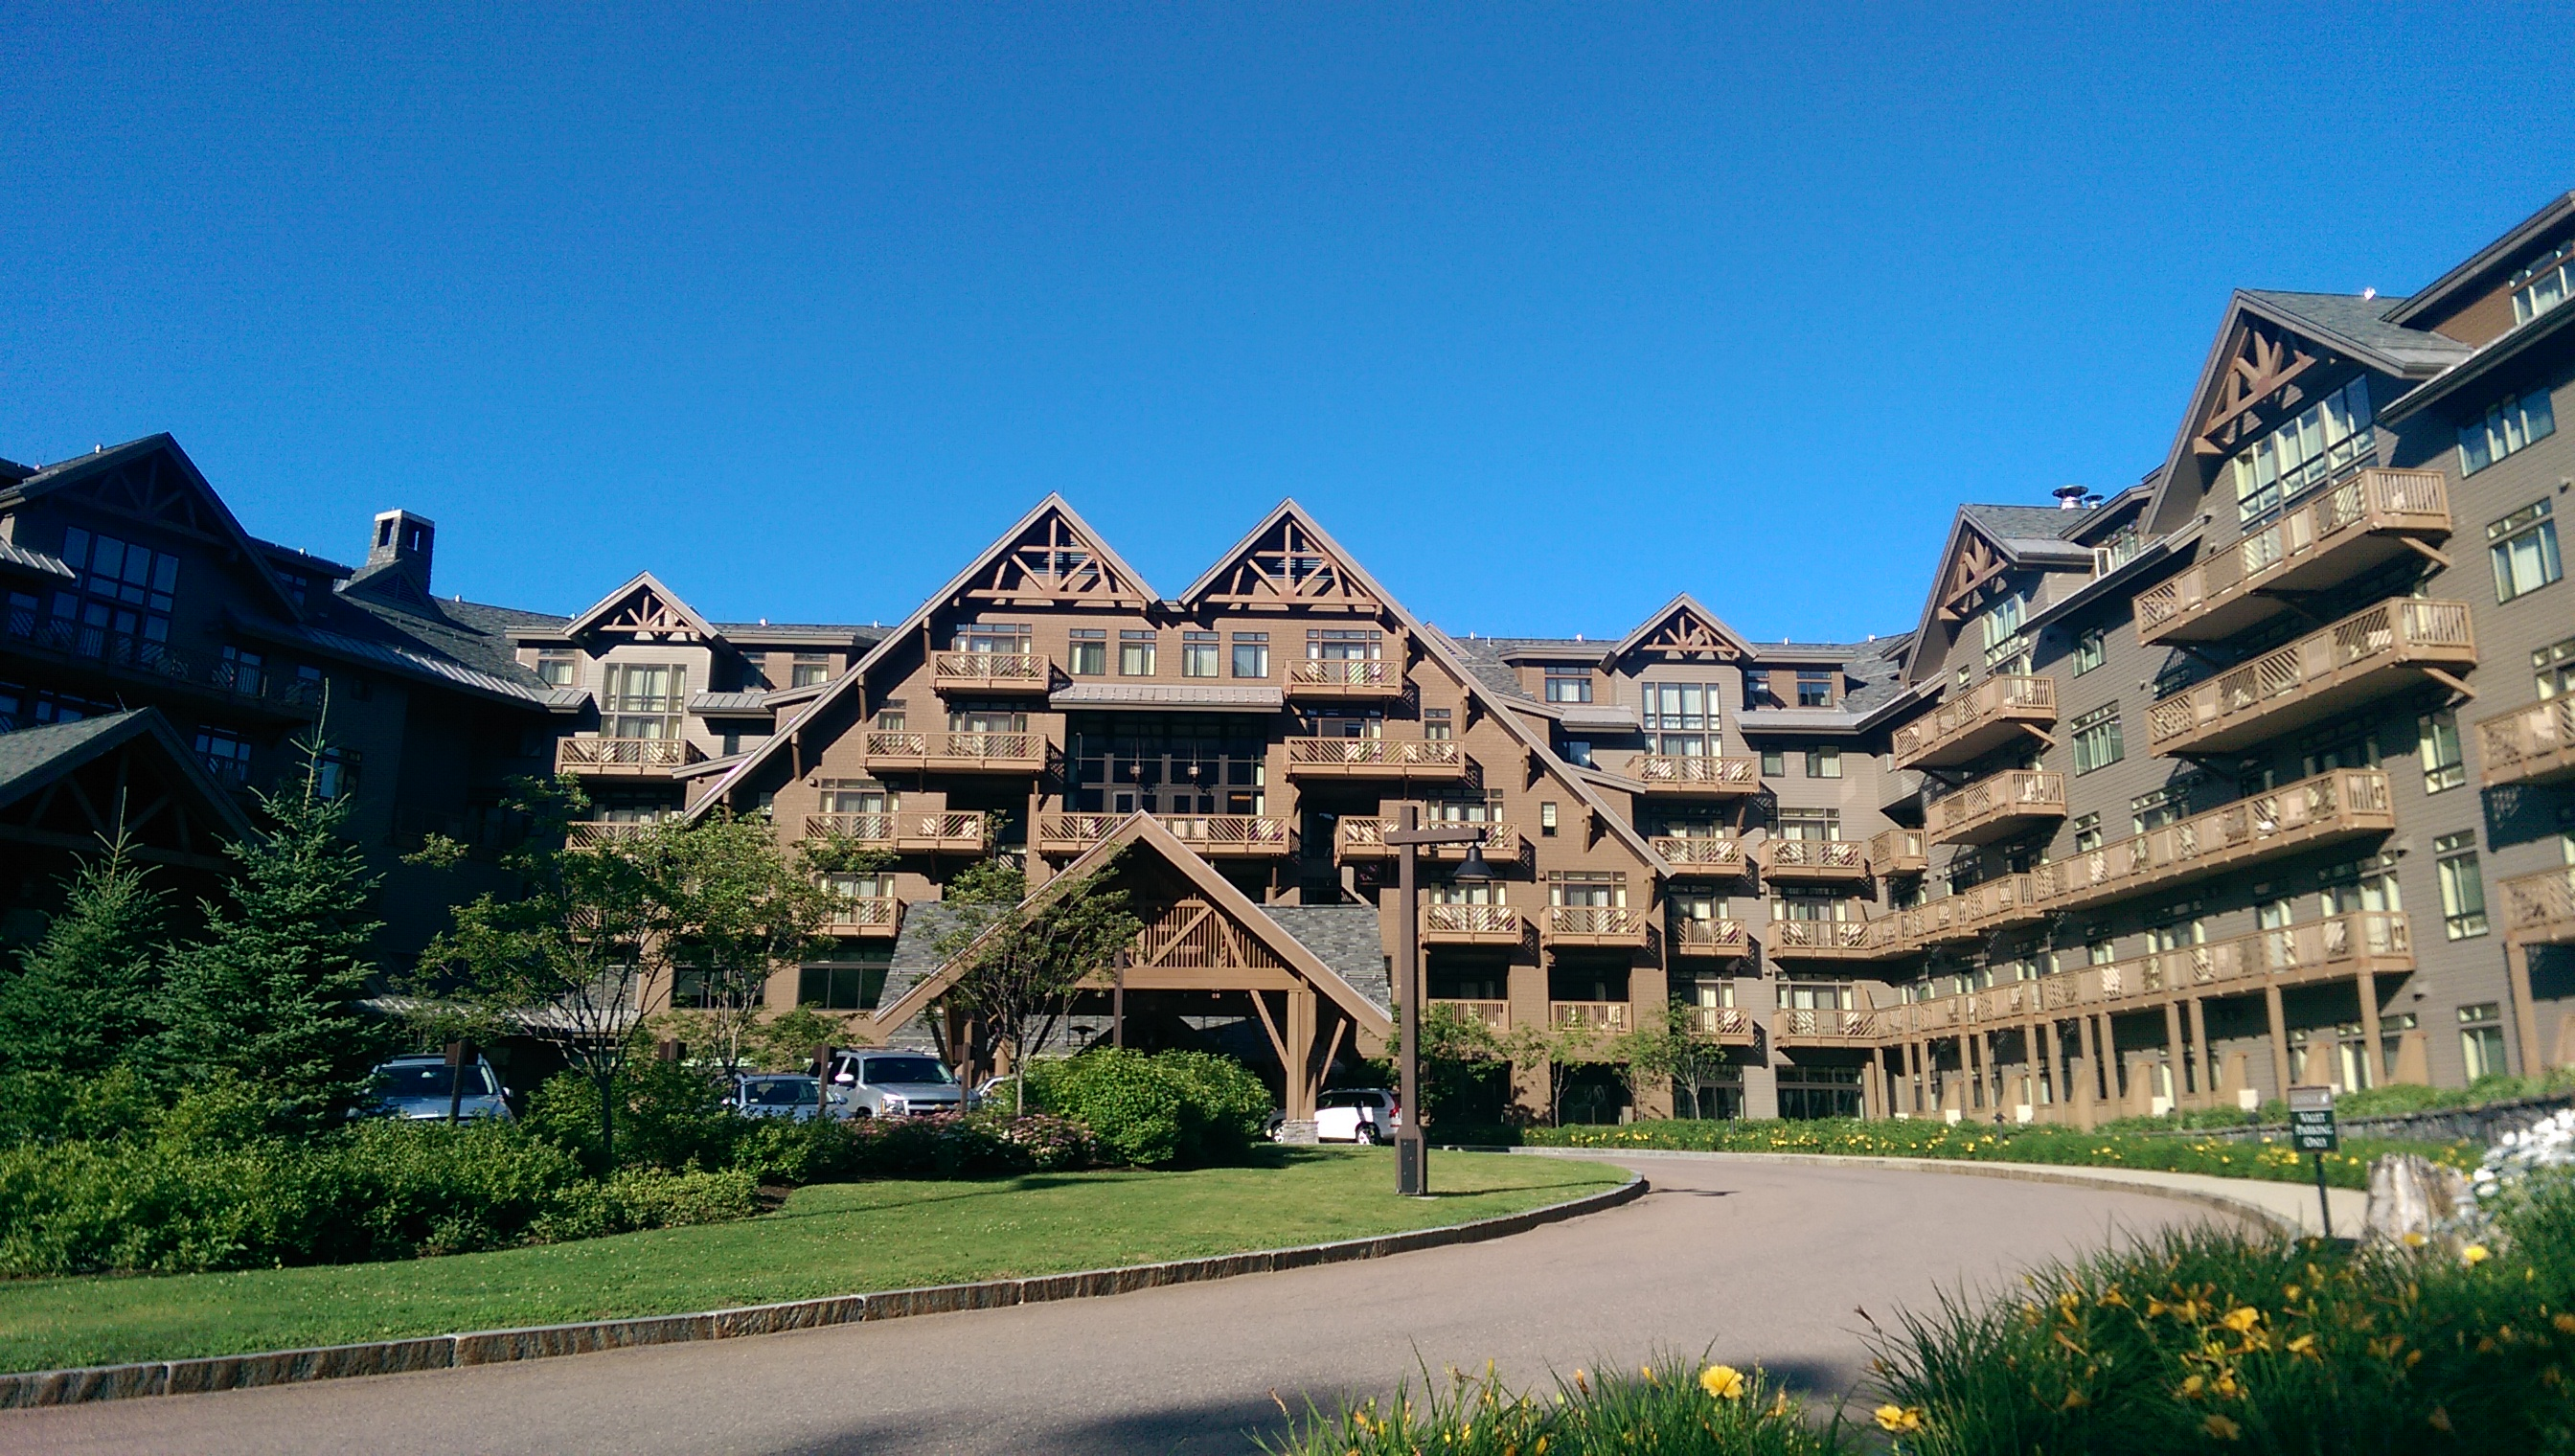 Stowe Mountain Lodge >> Stowe Mountain Lodge A Little Bit About A Lot Of Things A Little